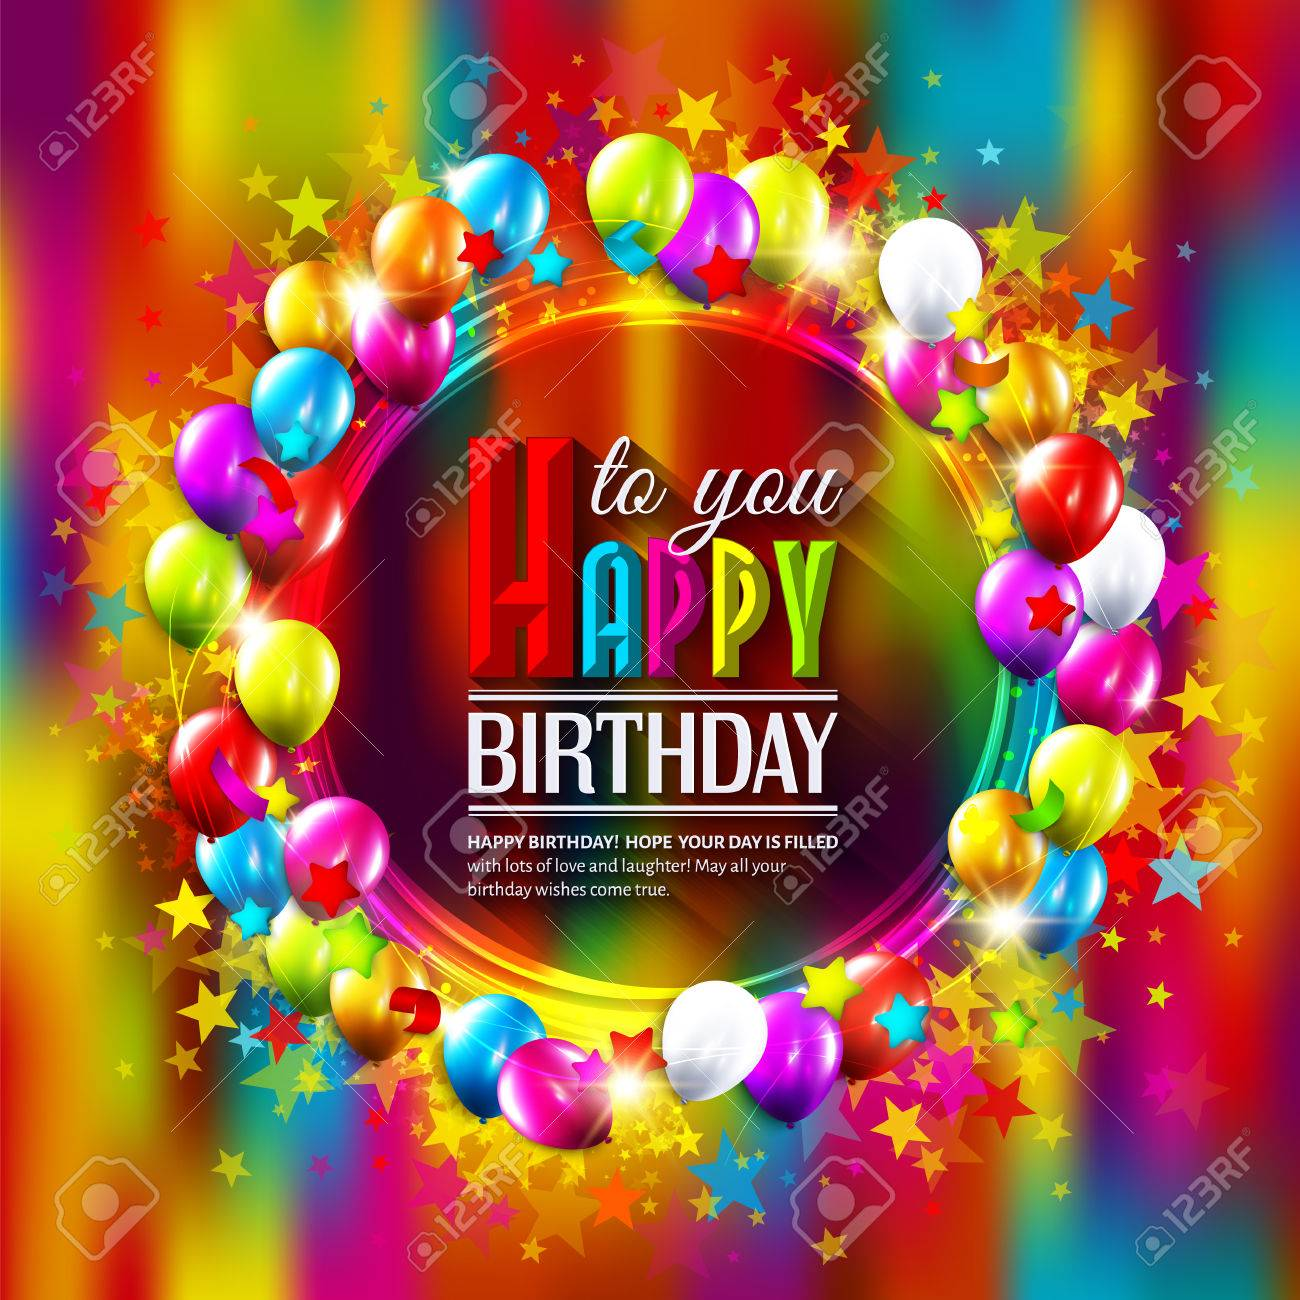 Vector birthday card with stars, balloons and confetti on multicolored background. - 40381281